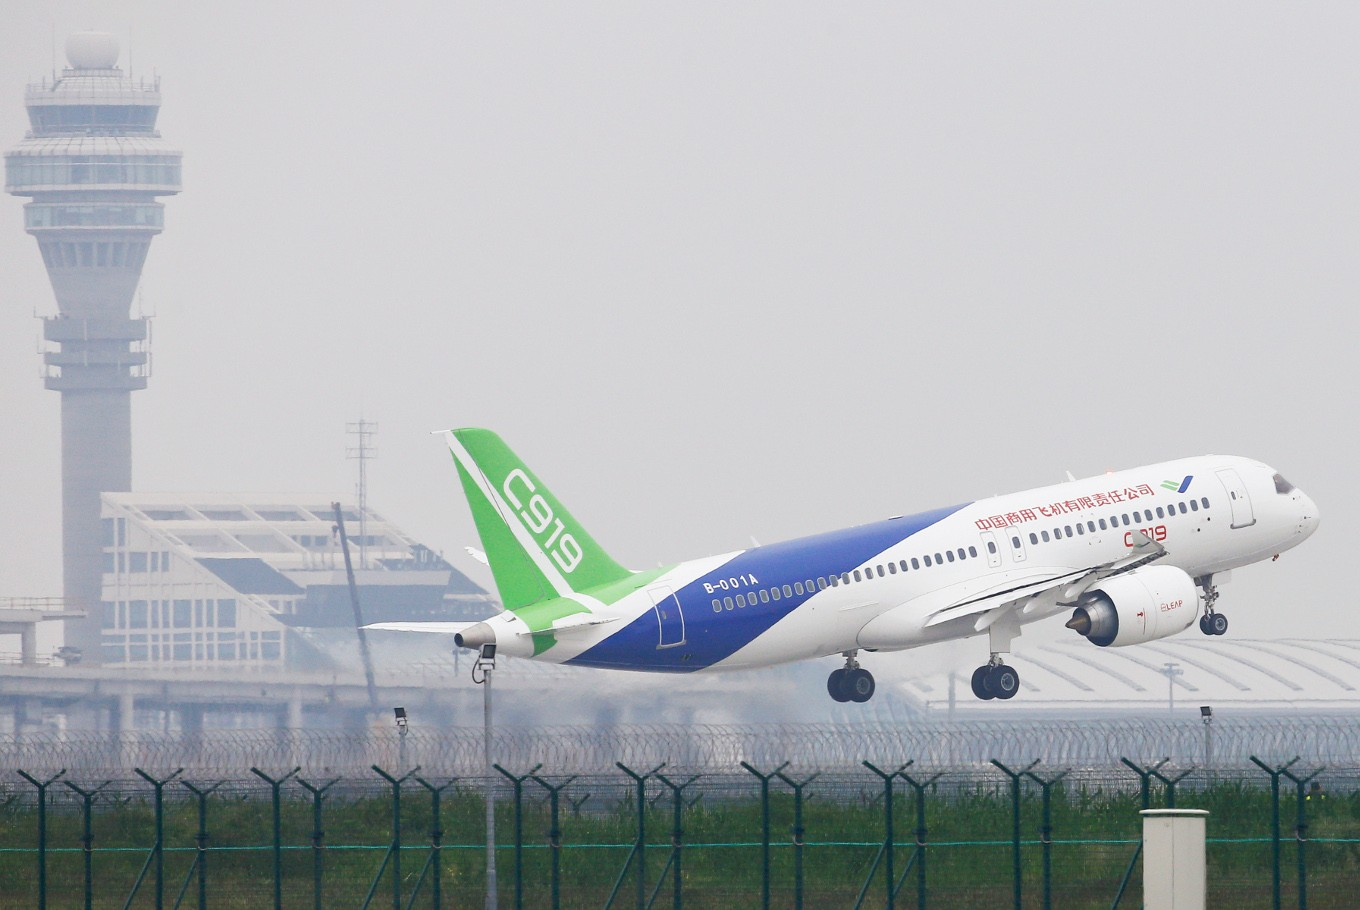 Only half of July's flights punctual in China